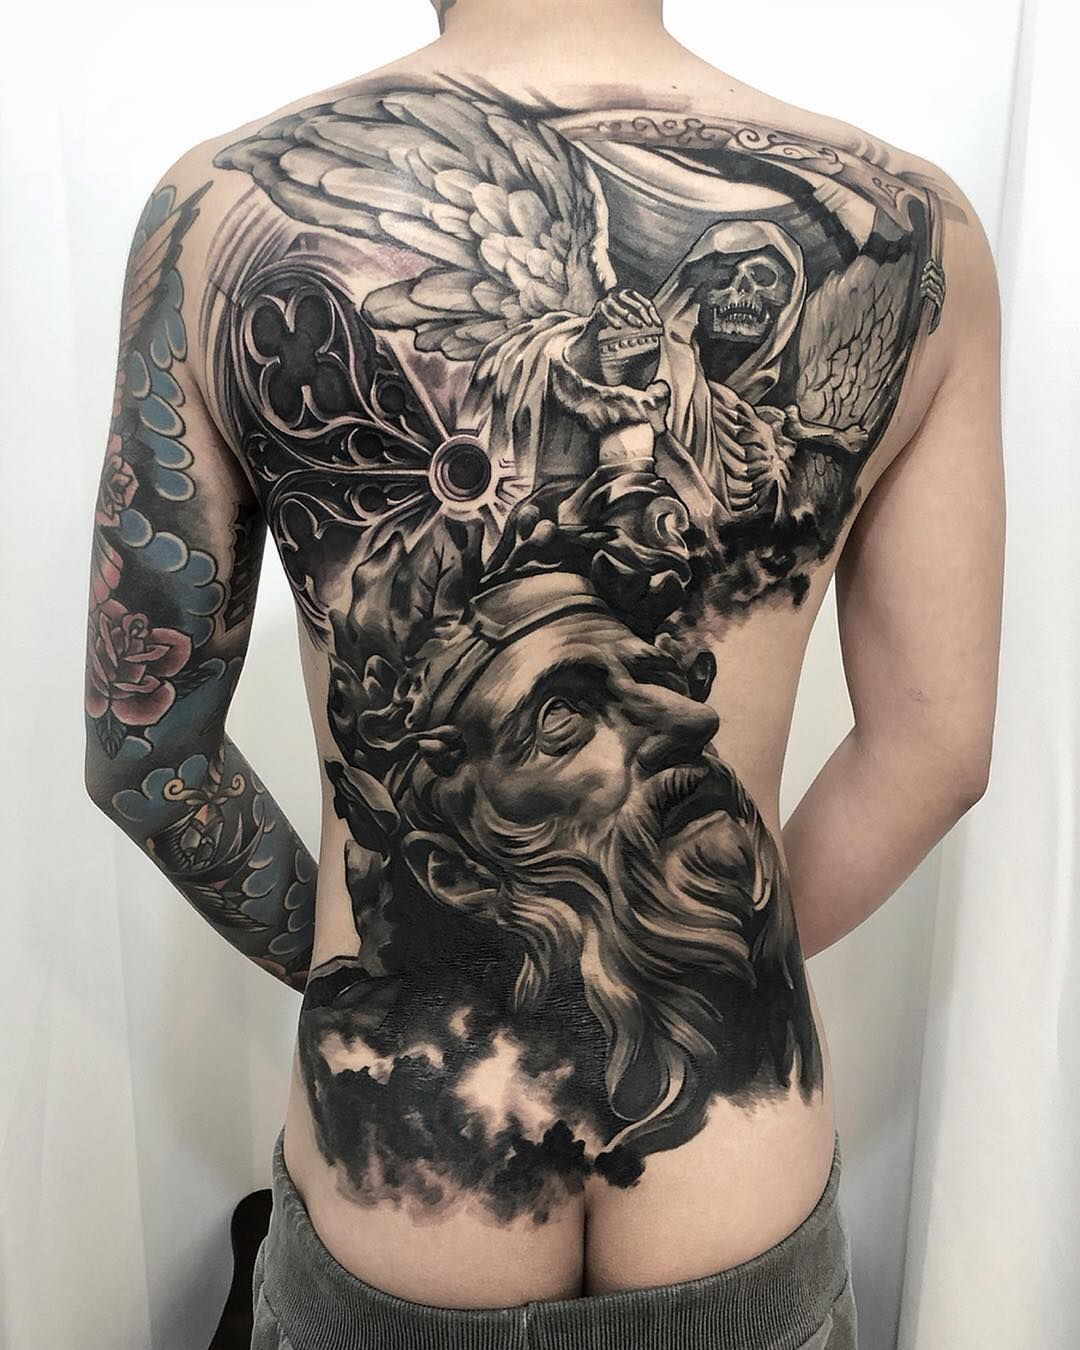 Tattoos in 2020 Cool chest tattoos, Chest tattoo men